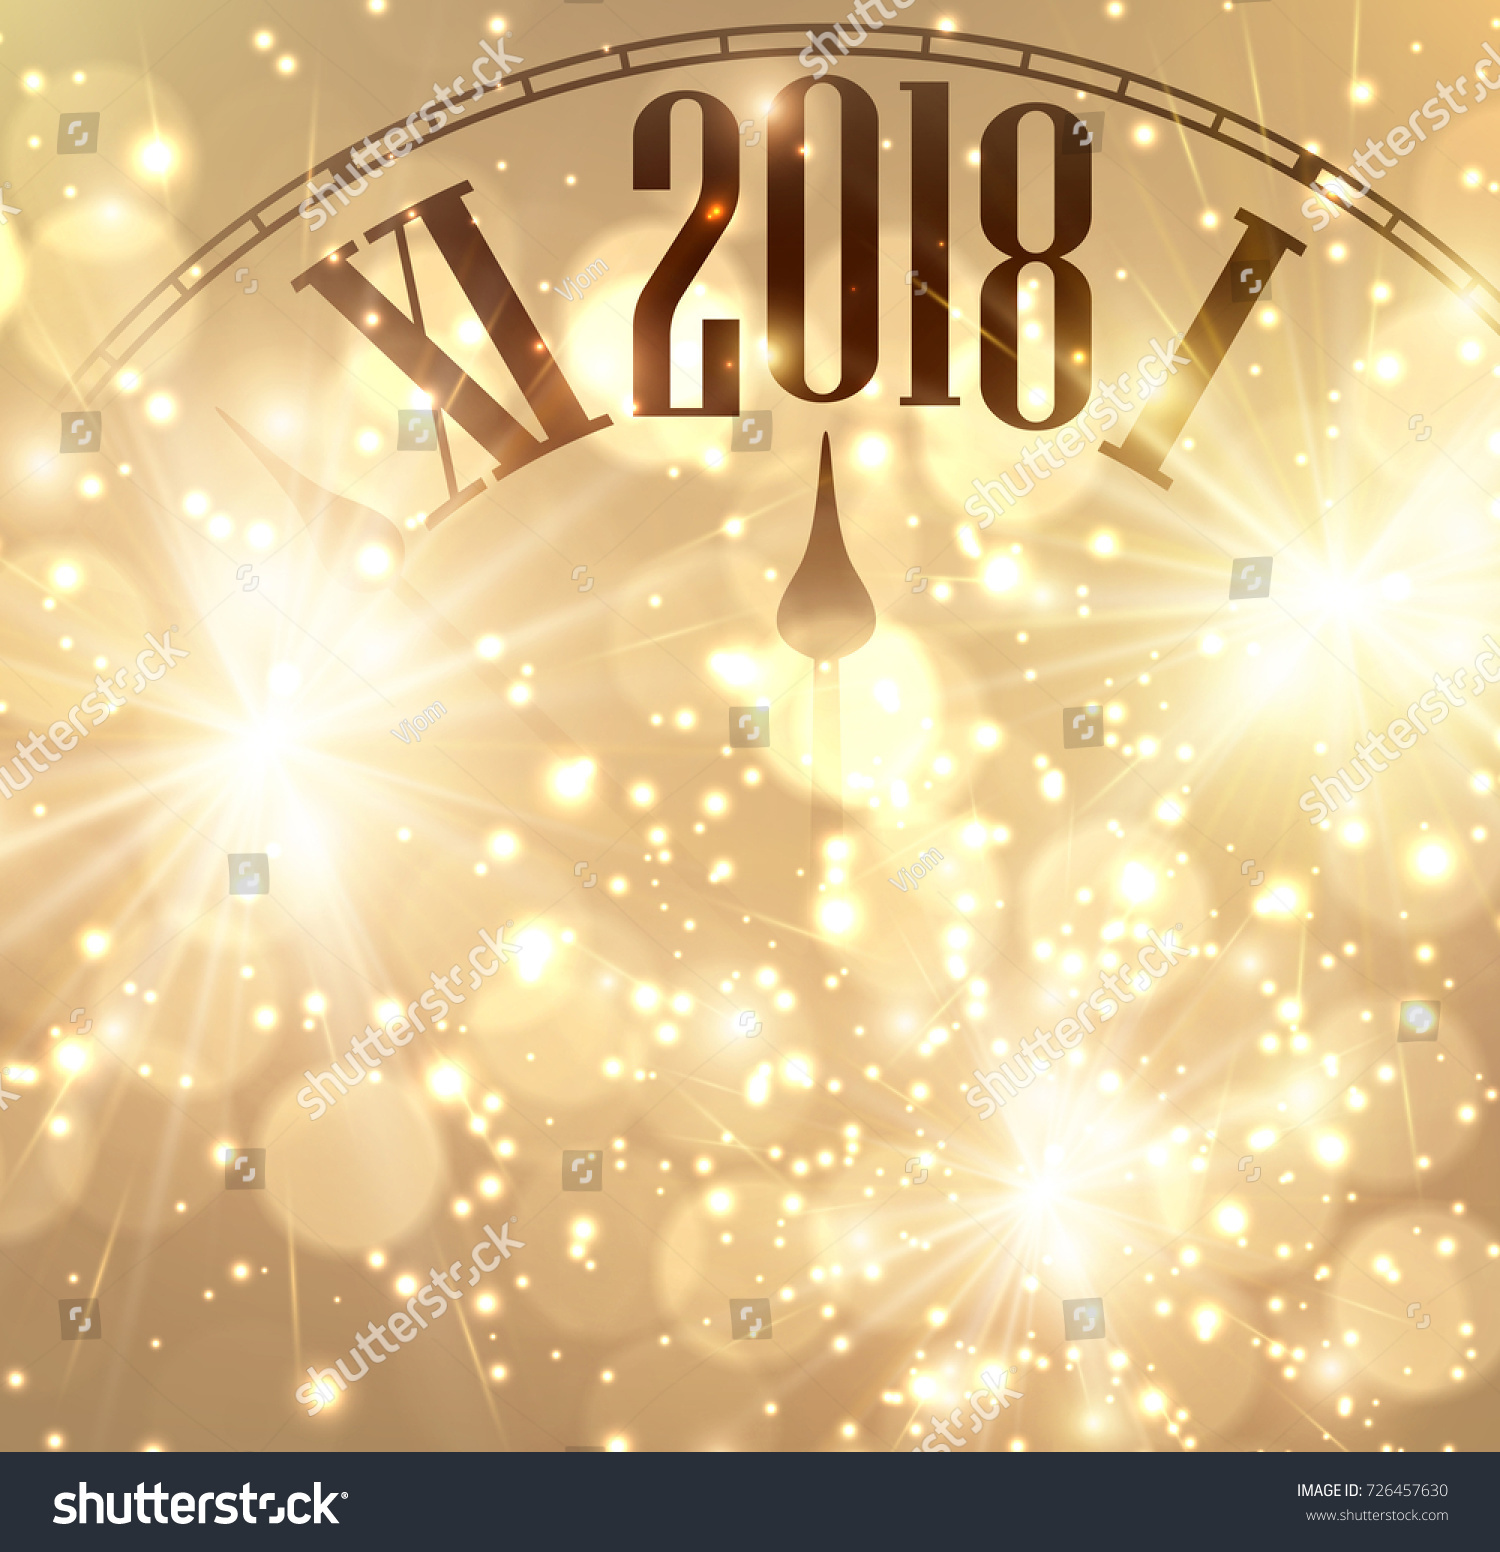 2018 new year shining background with clock vector illustration